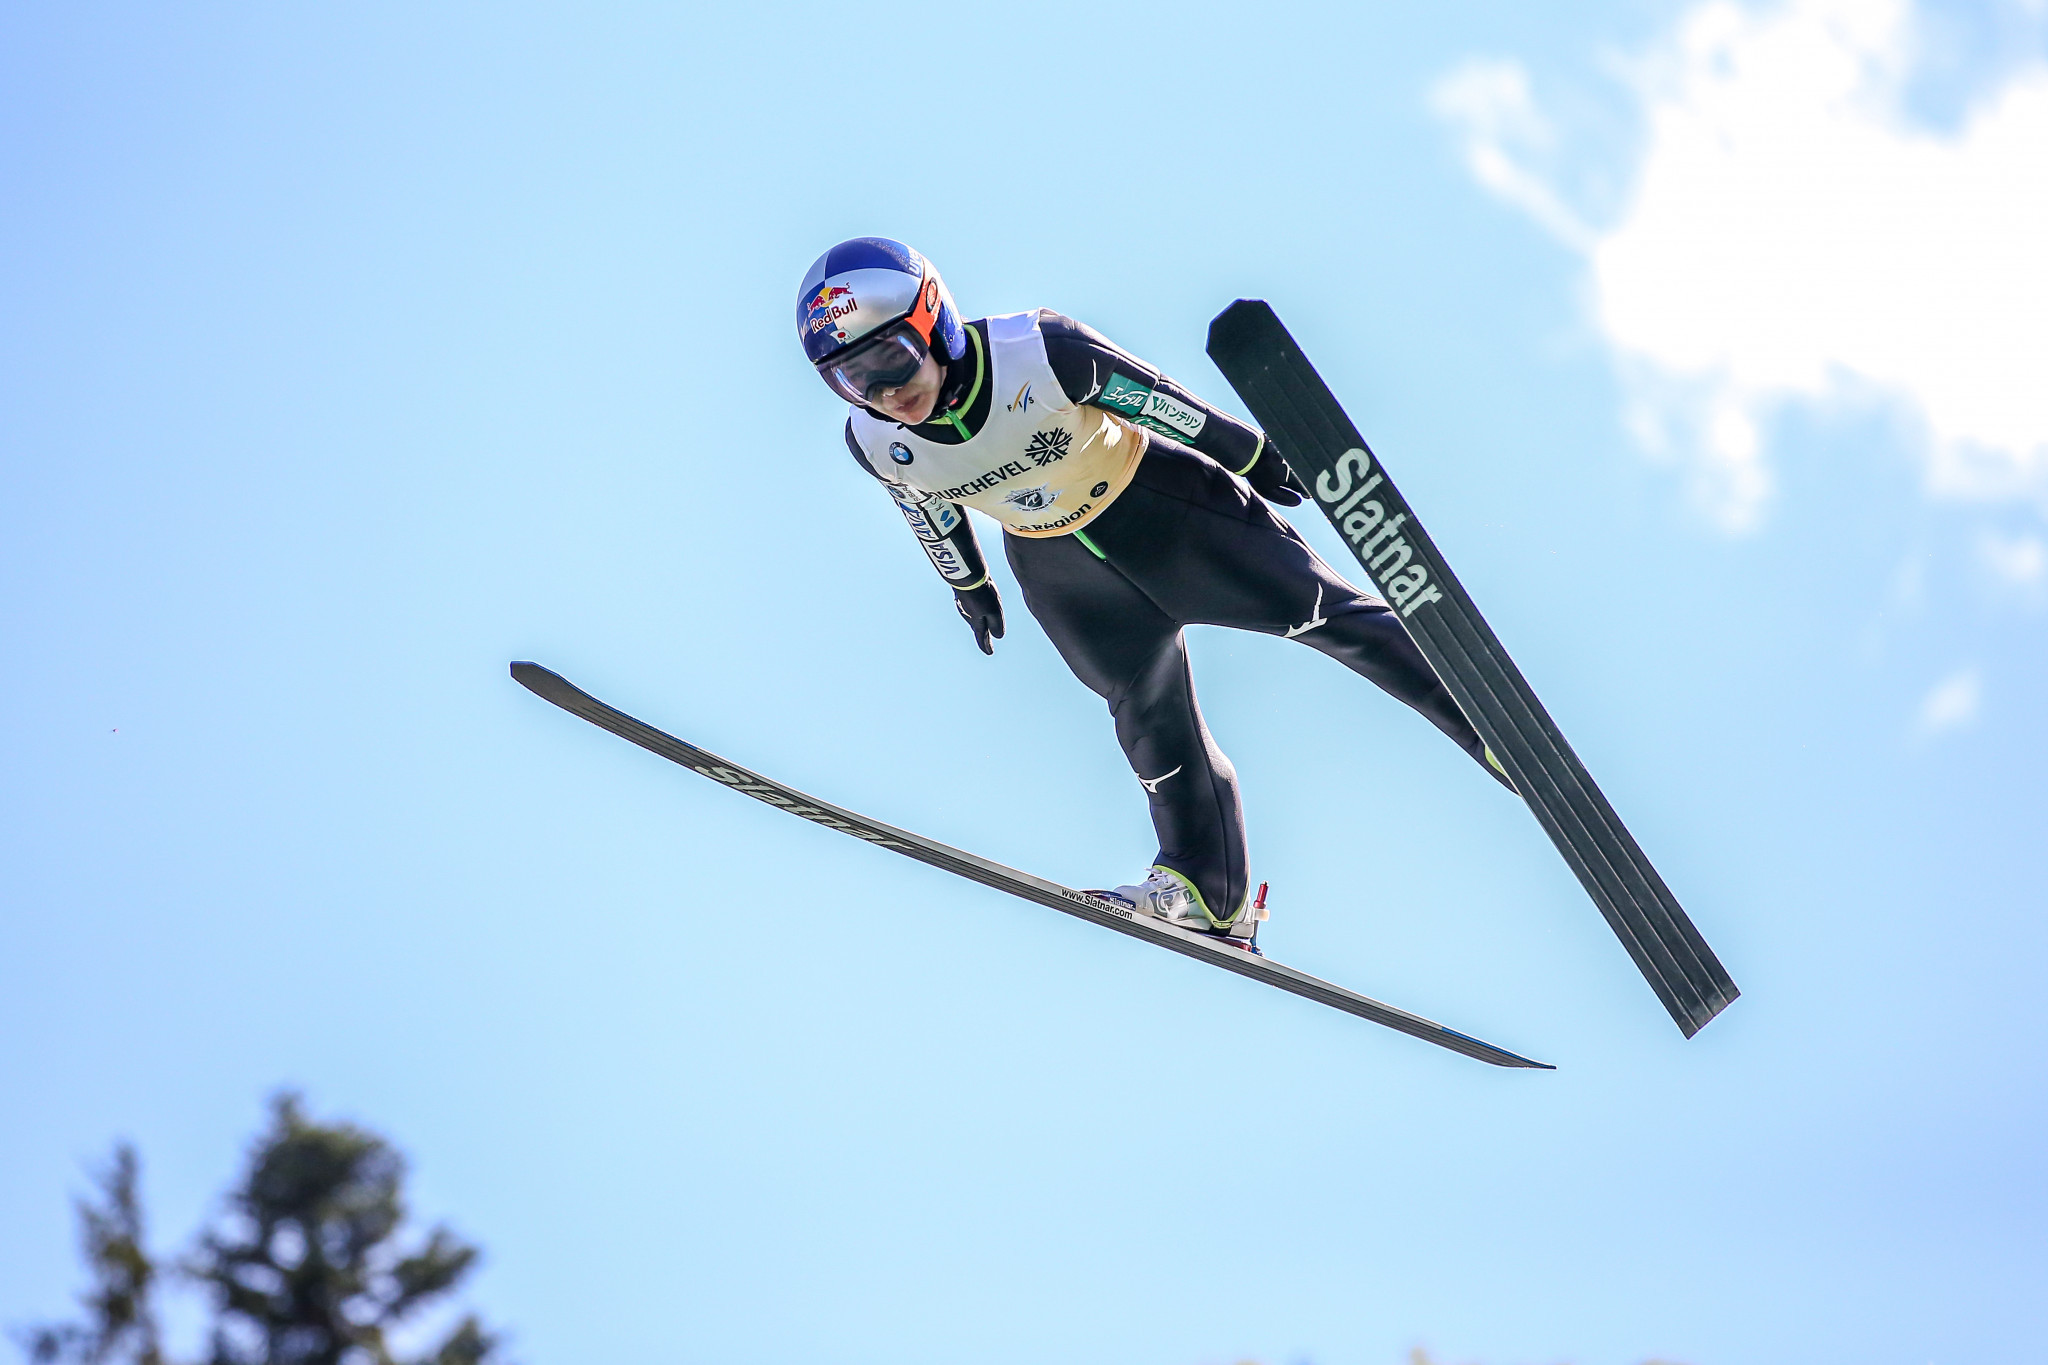 New study looks into injuries in women's ski jumping